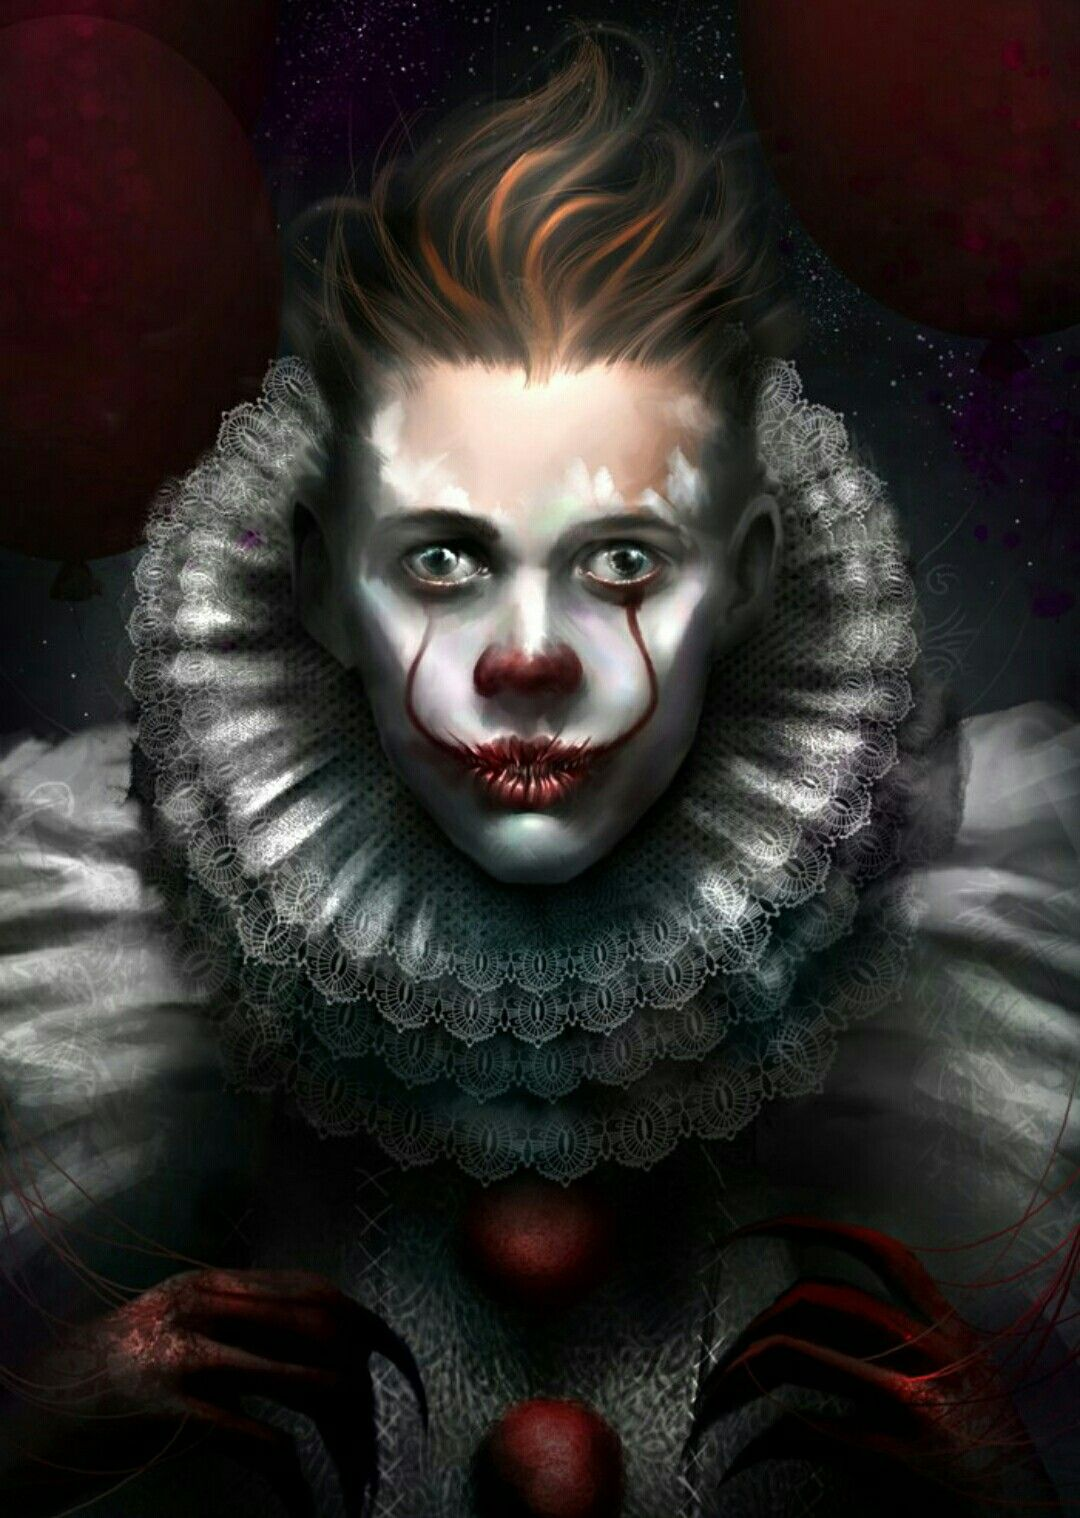 bill sk pennywise it it in 2018 pinterest horreur and le clown